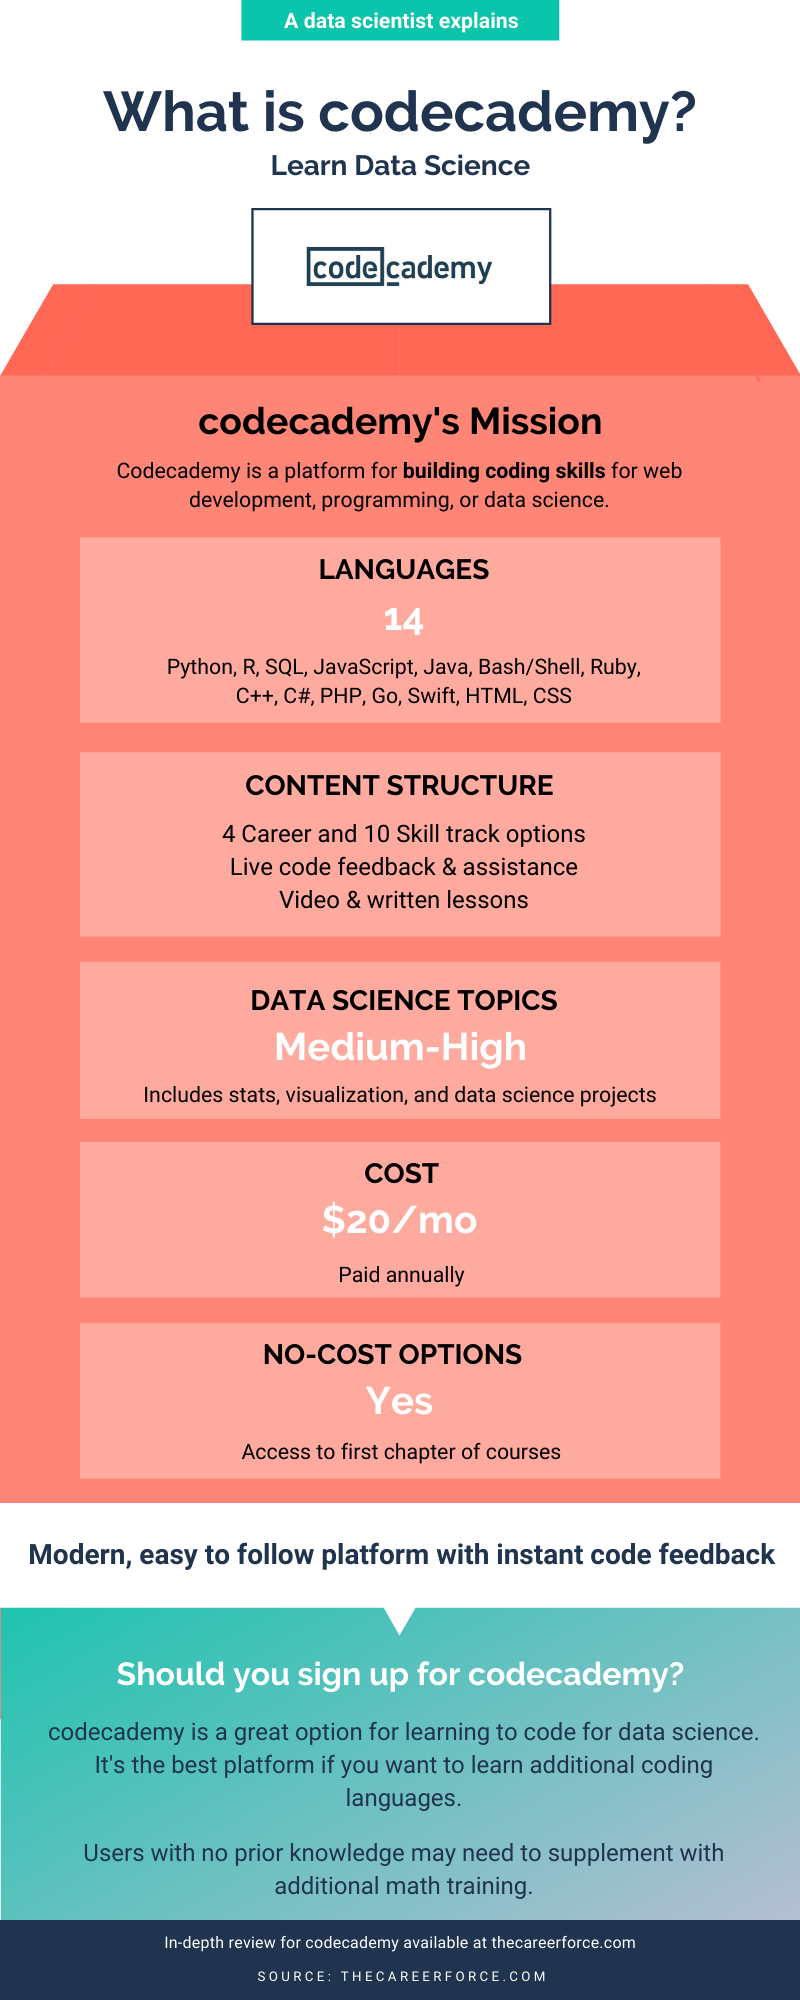 Codecademy Review Infographic